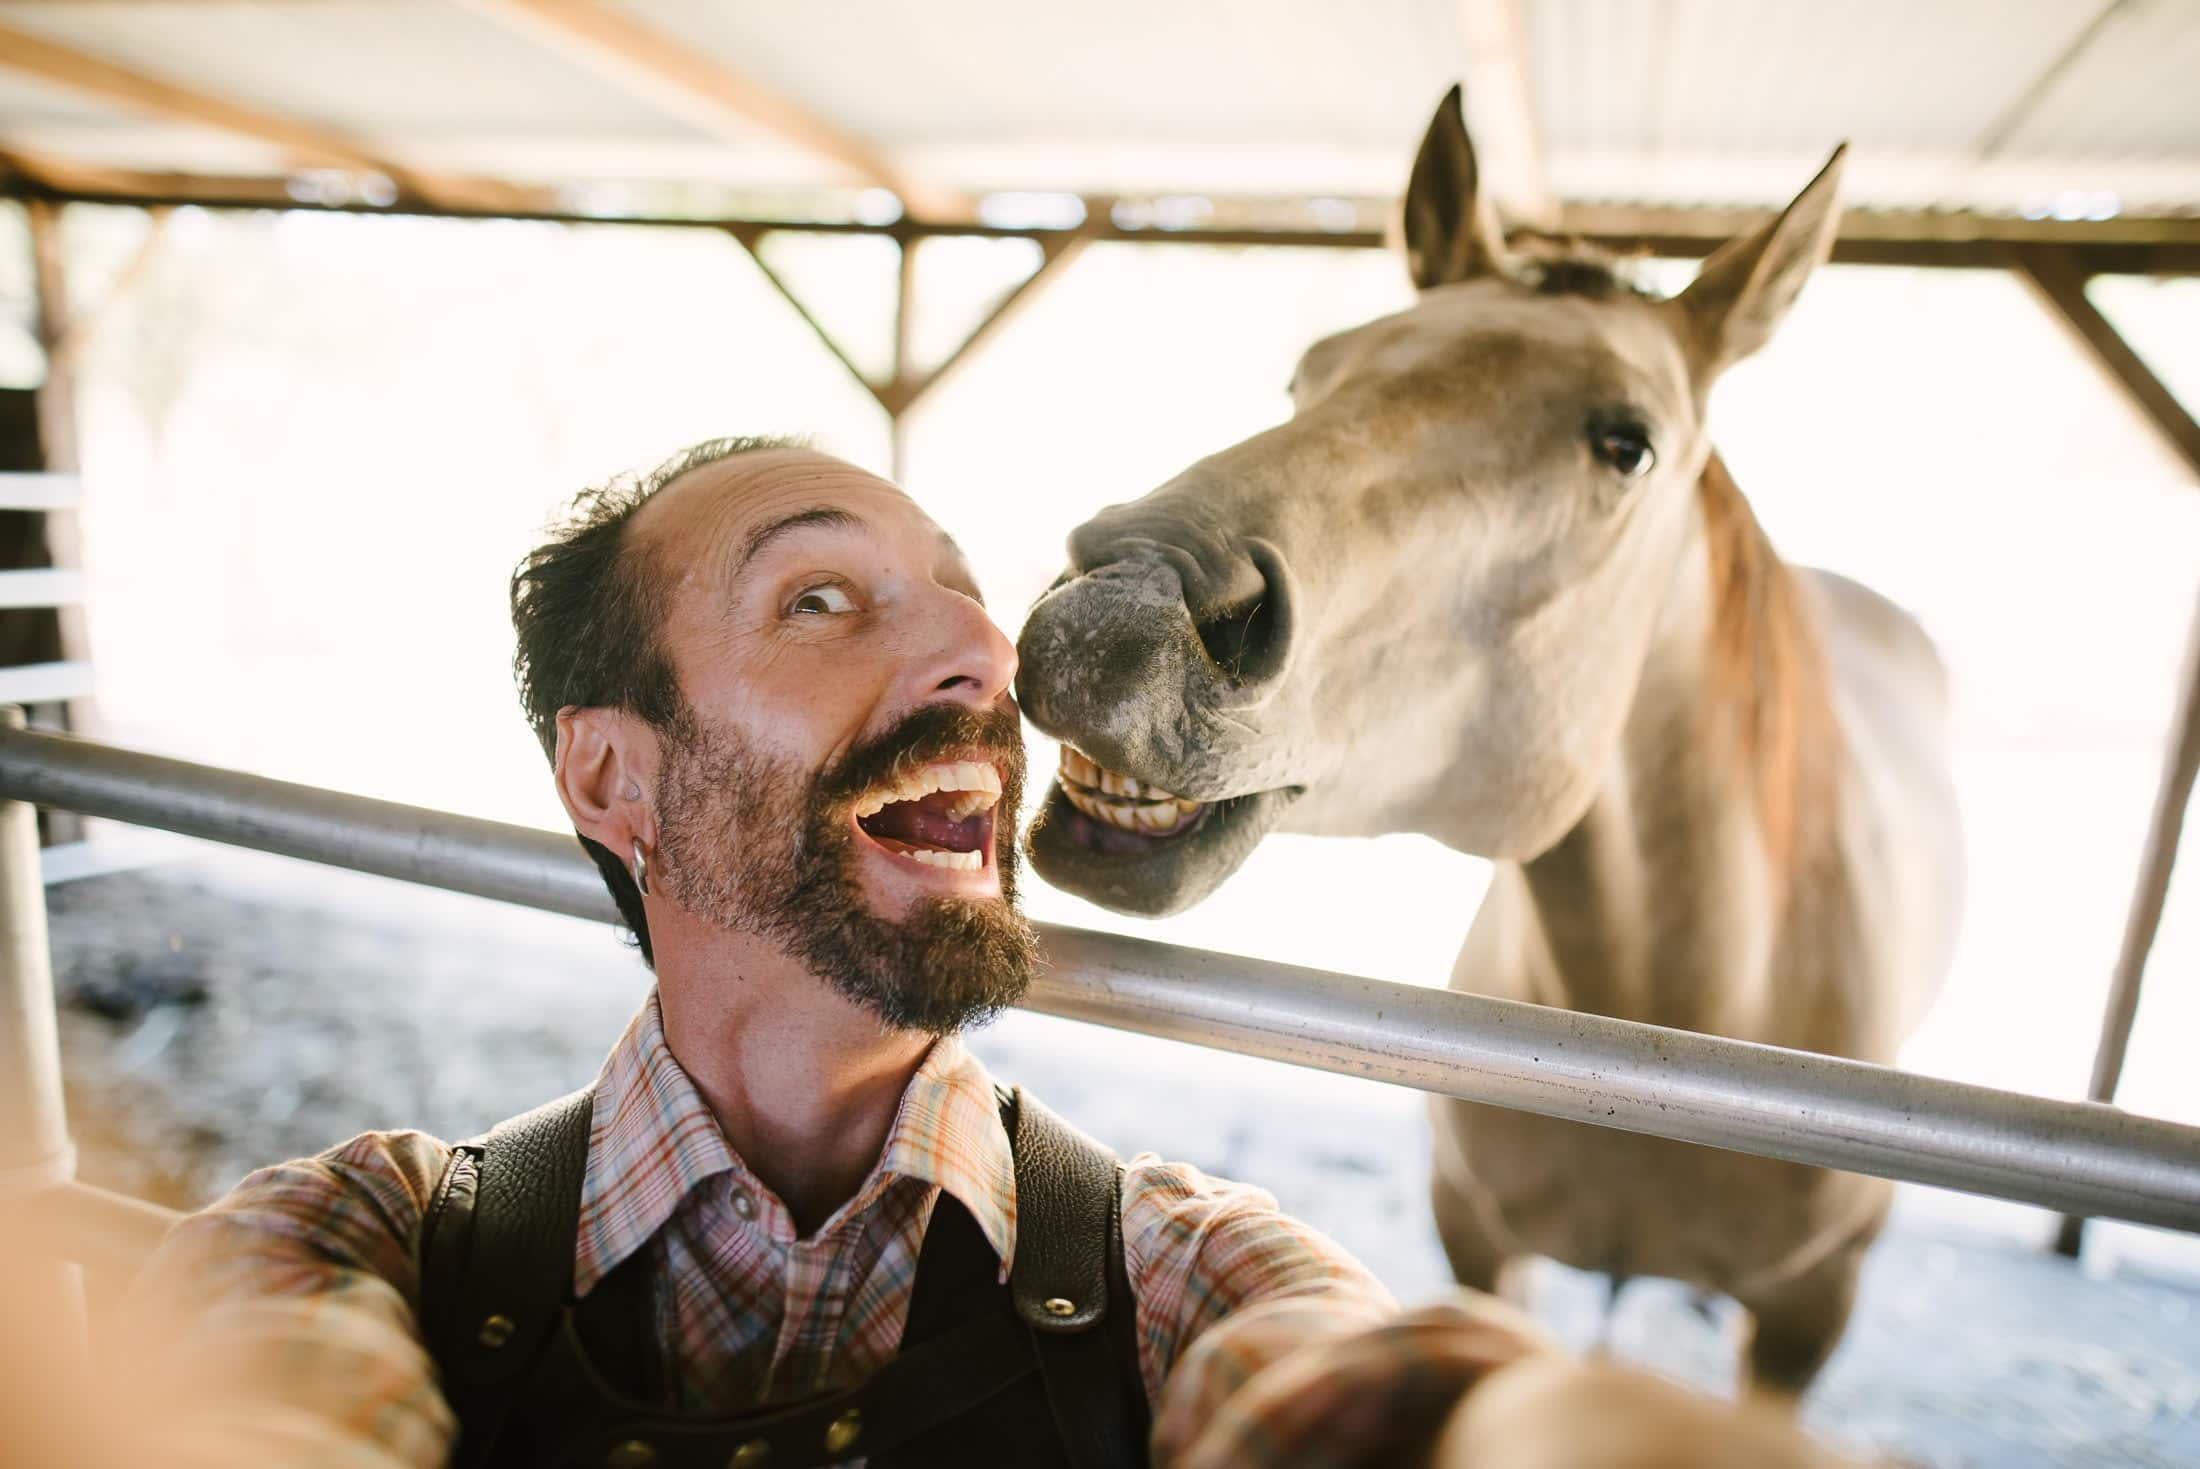 Selfie with a Horse